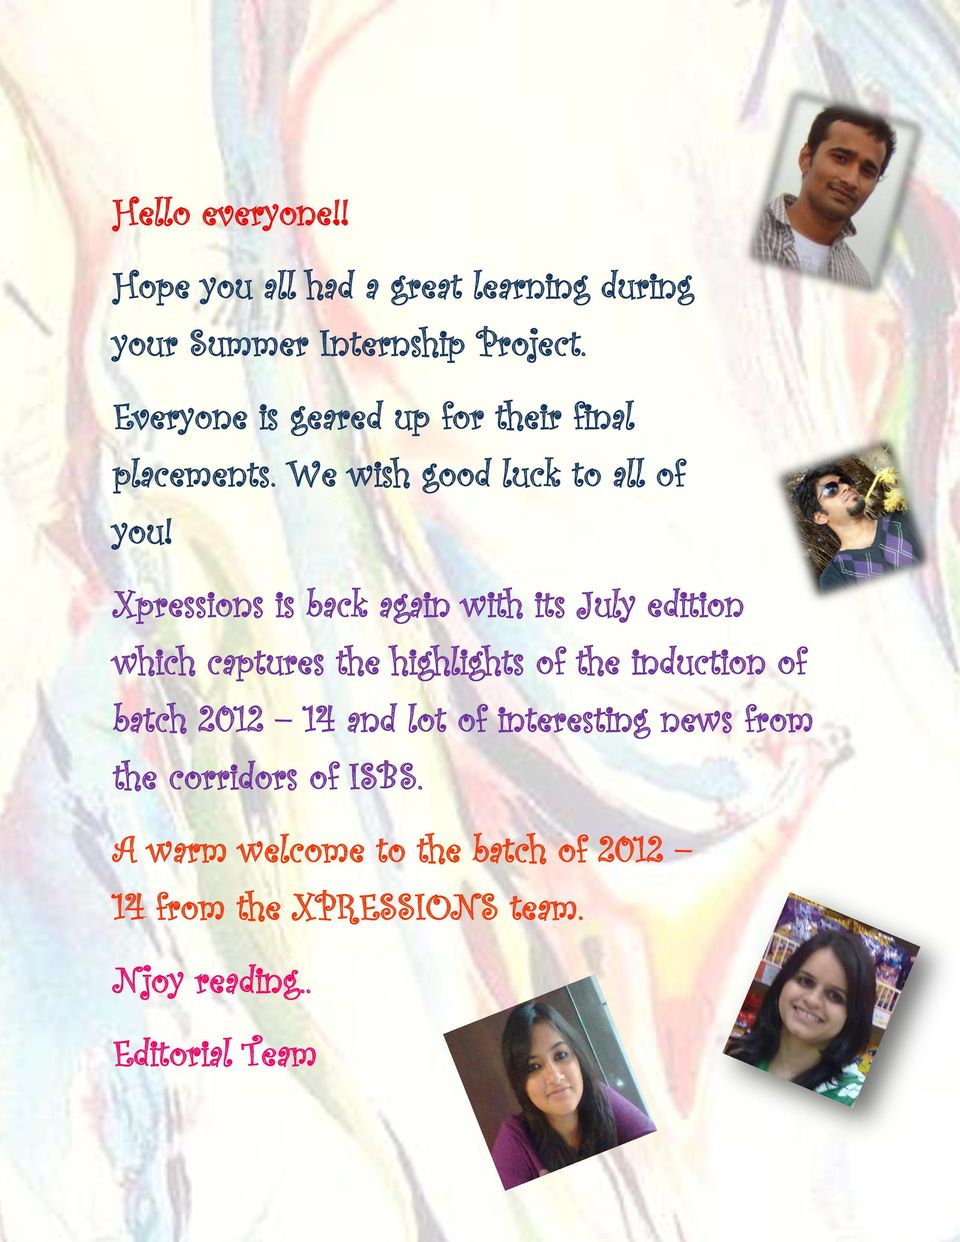 Xpressions is back again with its July edition which captures the highlights of the induction of batch 2012